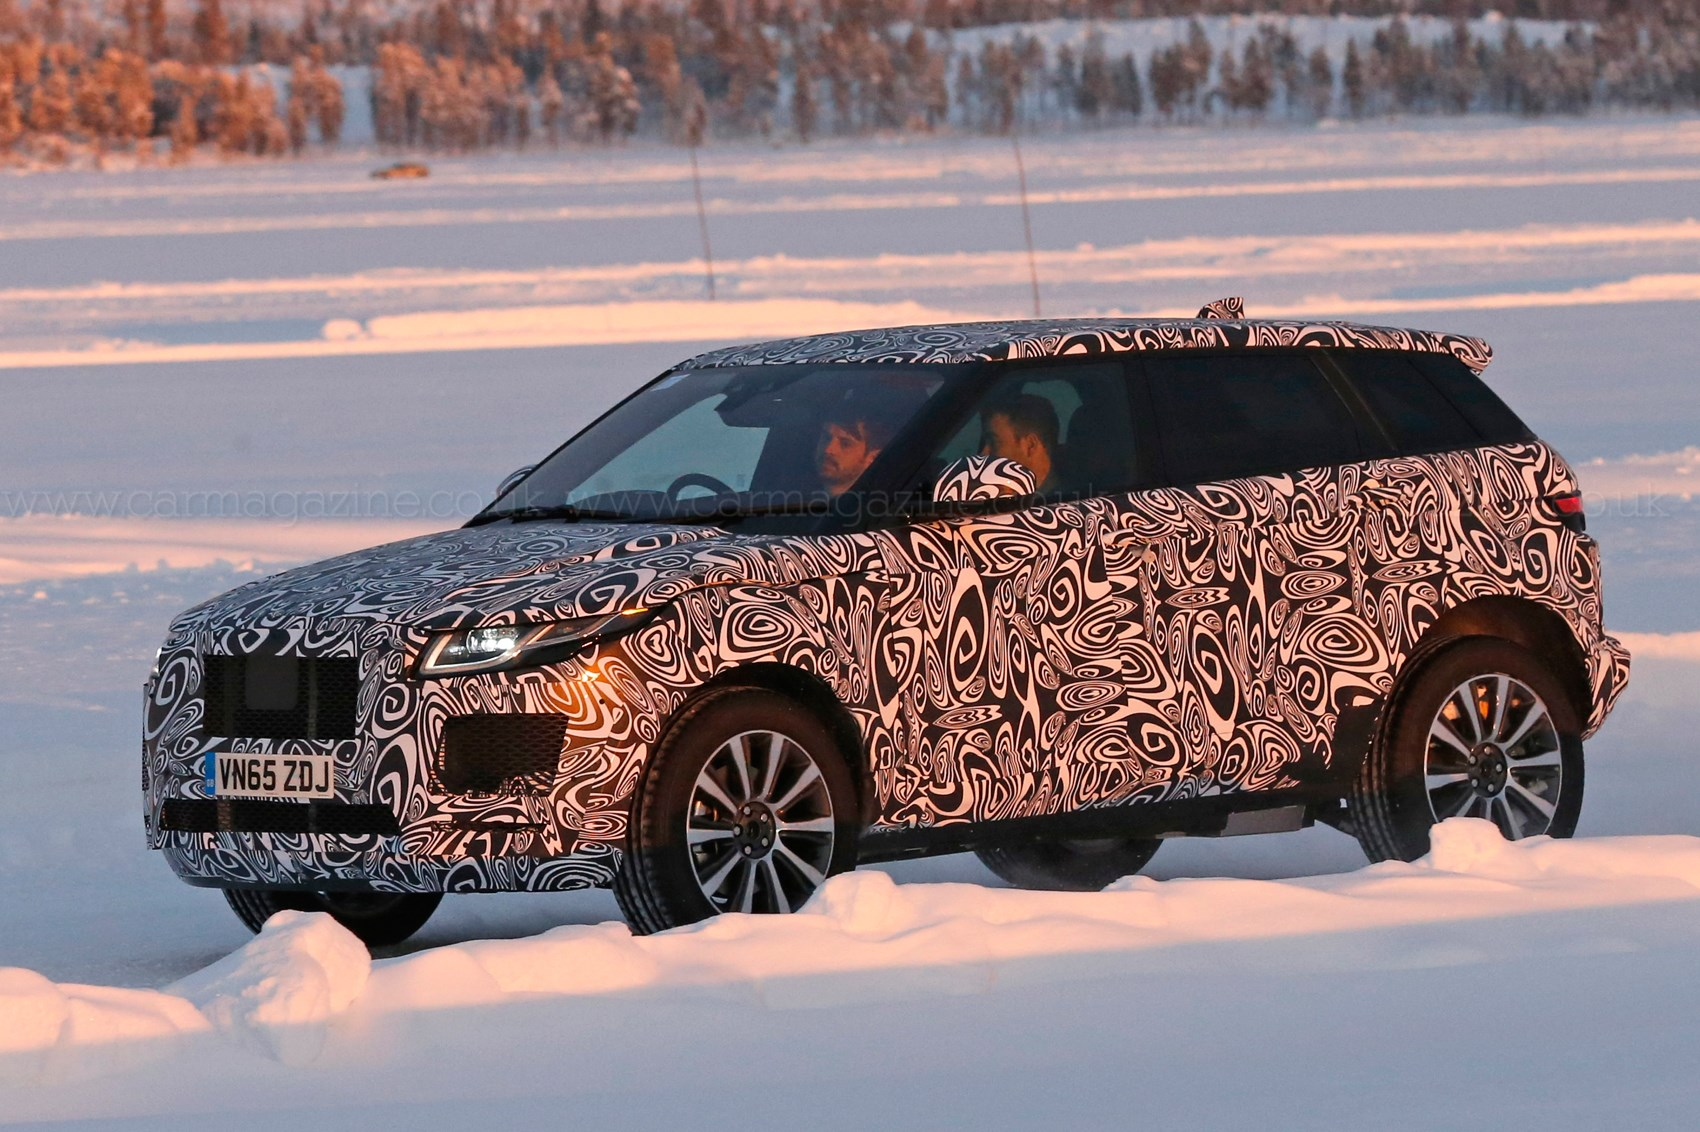 Jaguar E Pace Baby Suv 2018 Early Test Mule Spotted